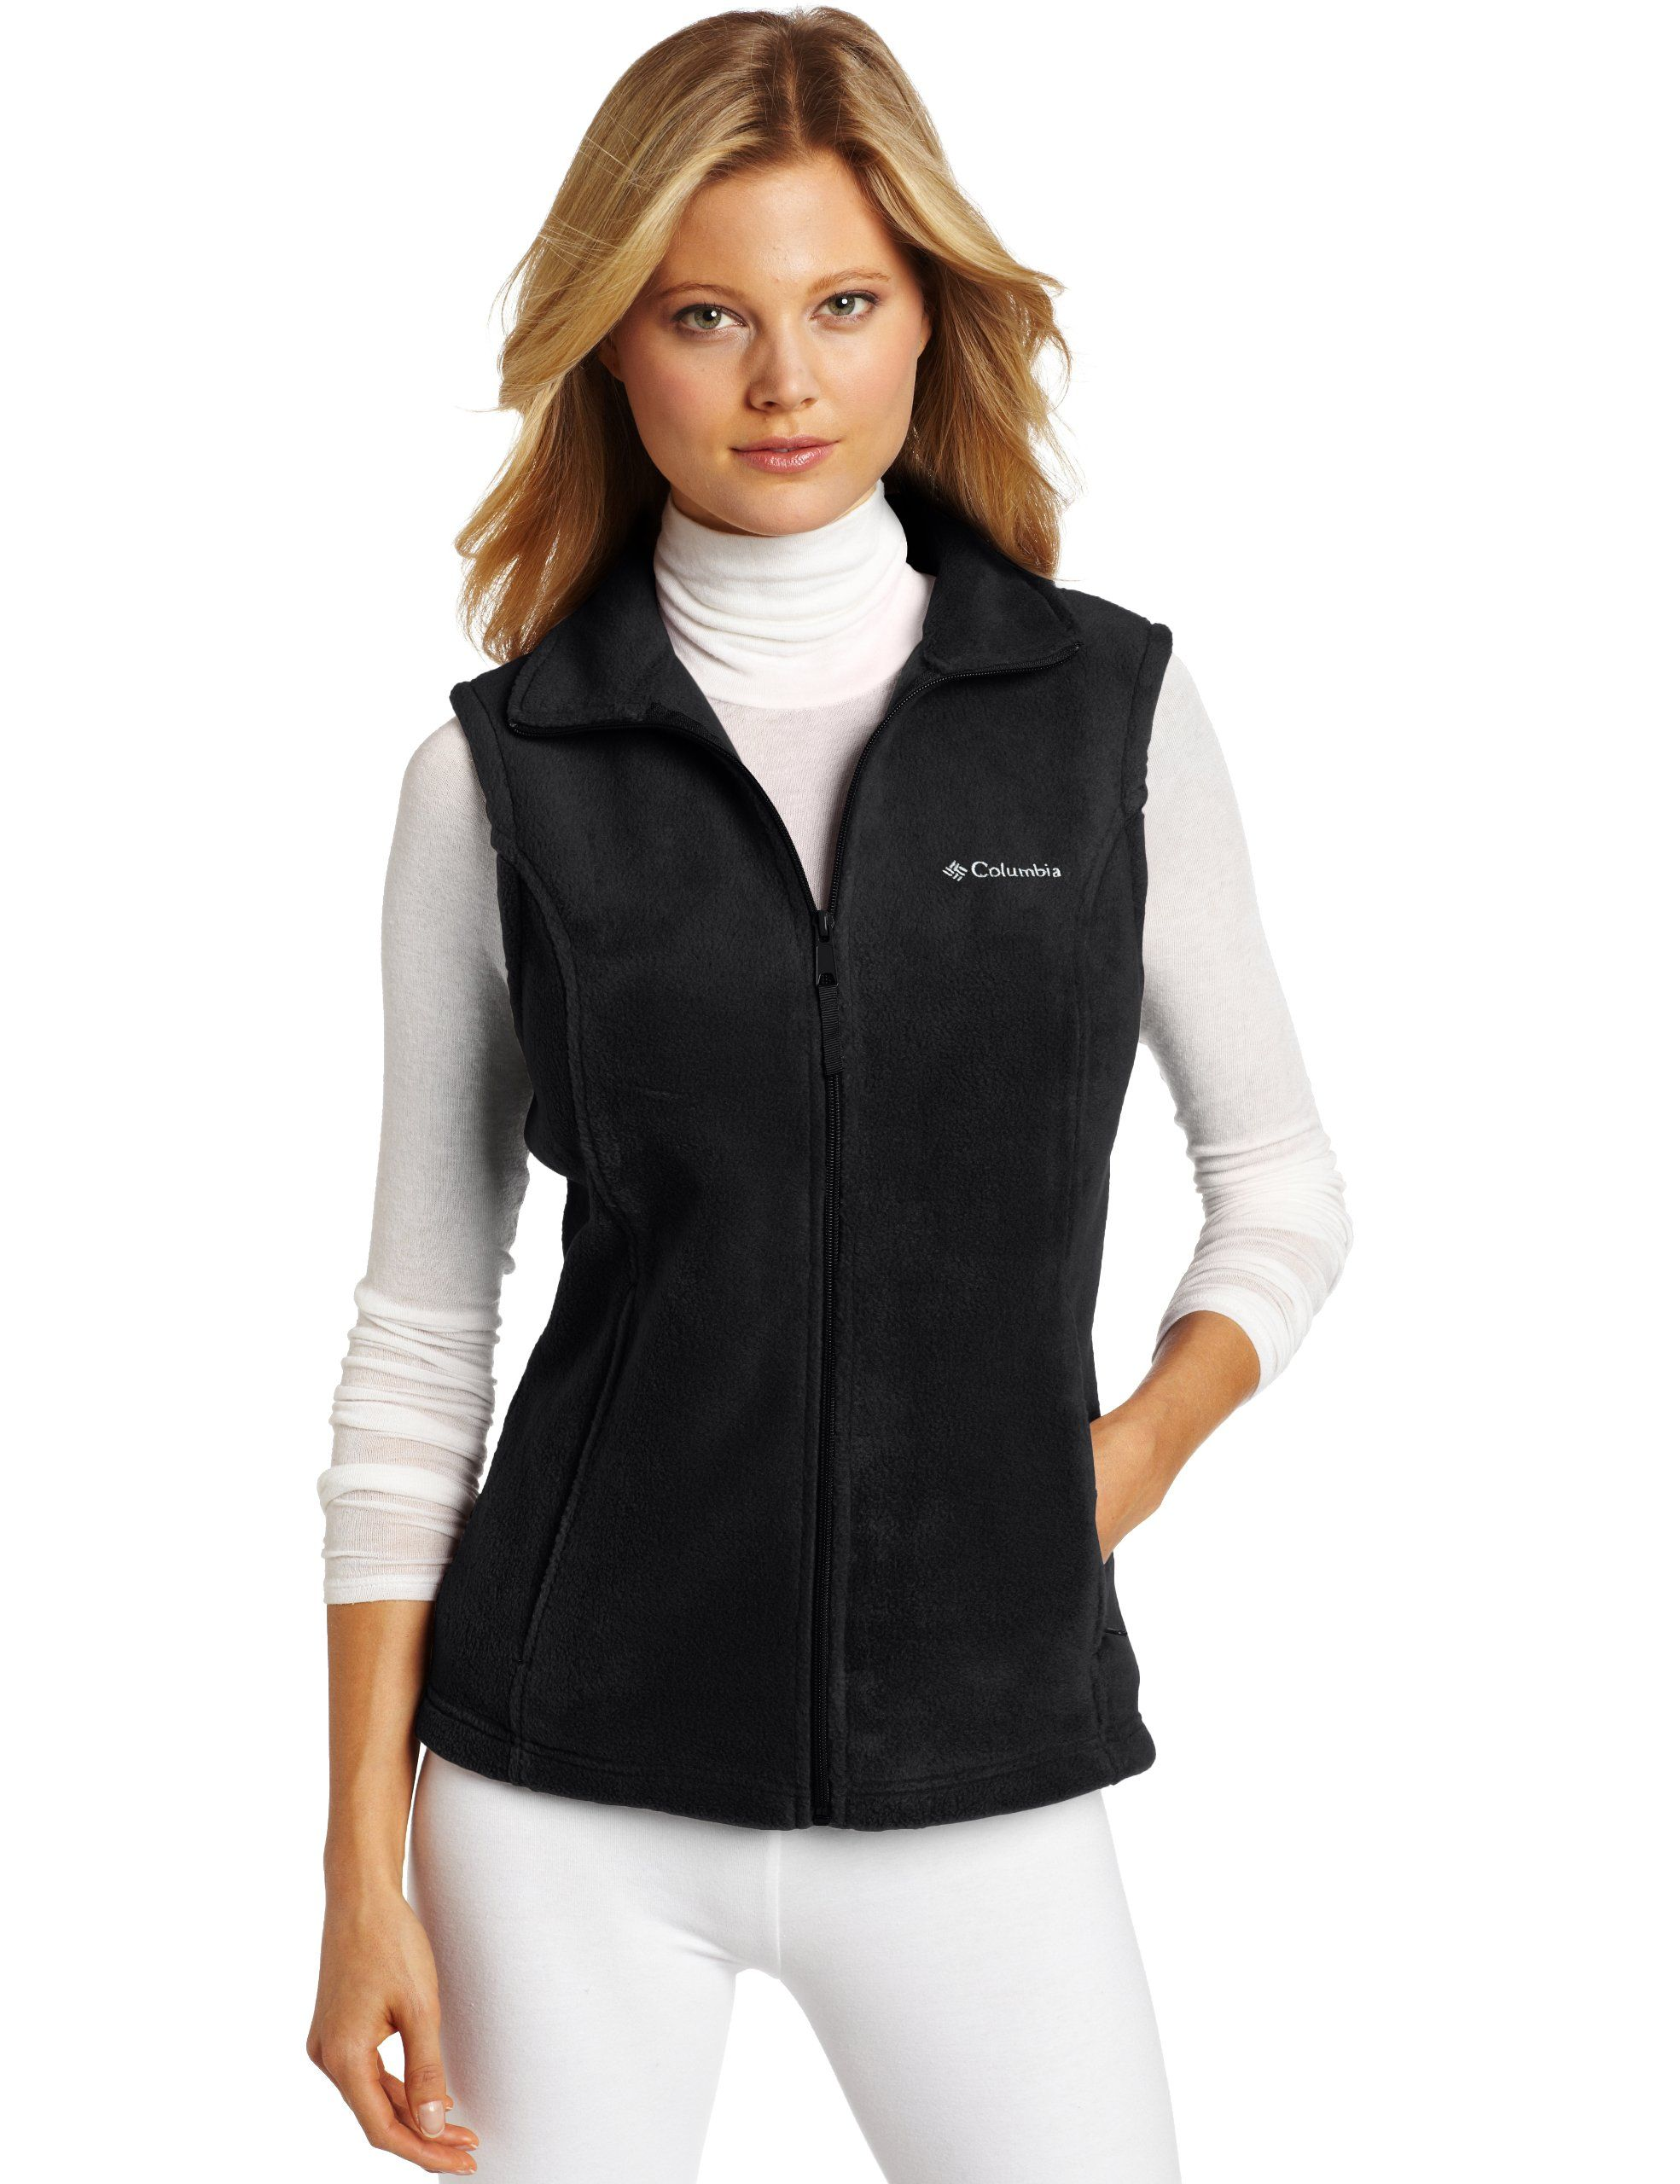 b3053dc5ae4 Columbia Women s Benton Springs Vest at Amazon Women s Clothing store   Fleece Outerwear Vests